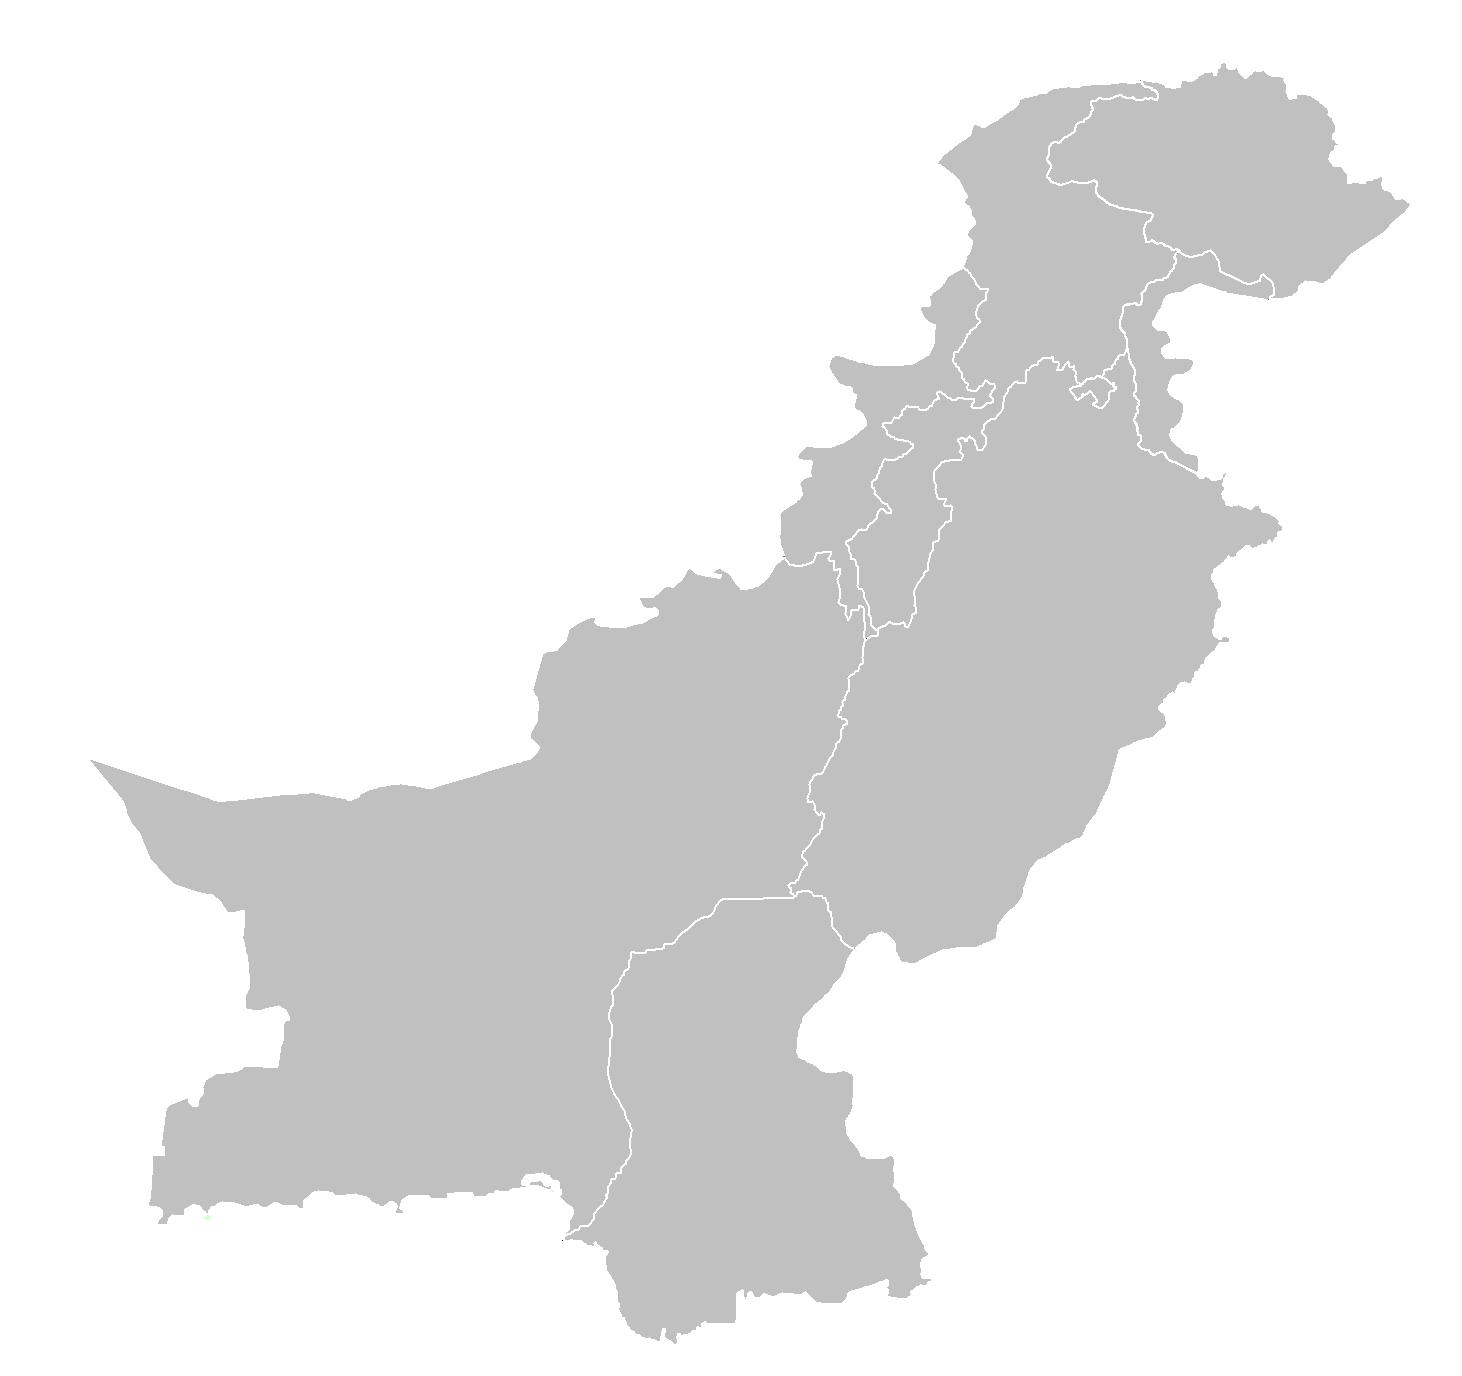 Pakistan Map By Pakistan Government